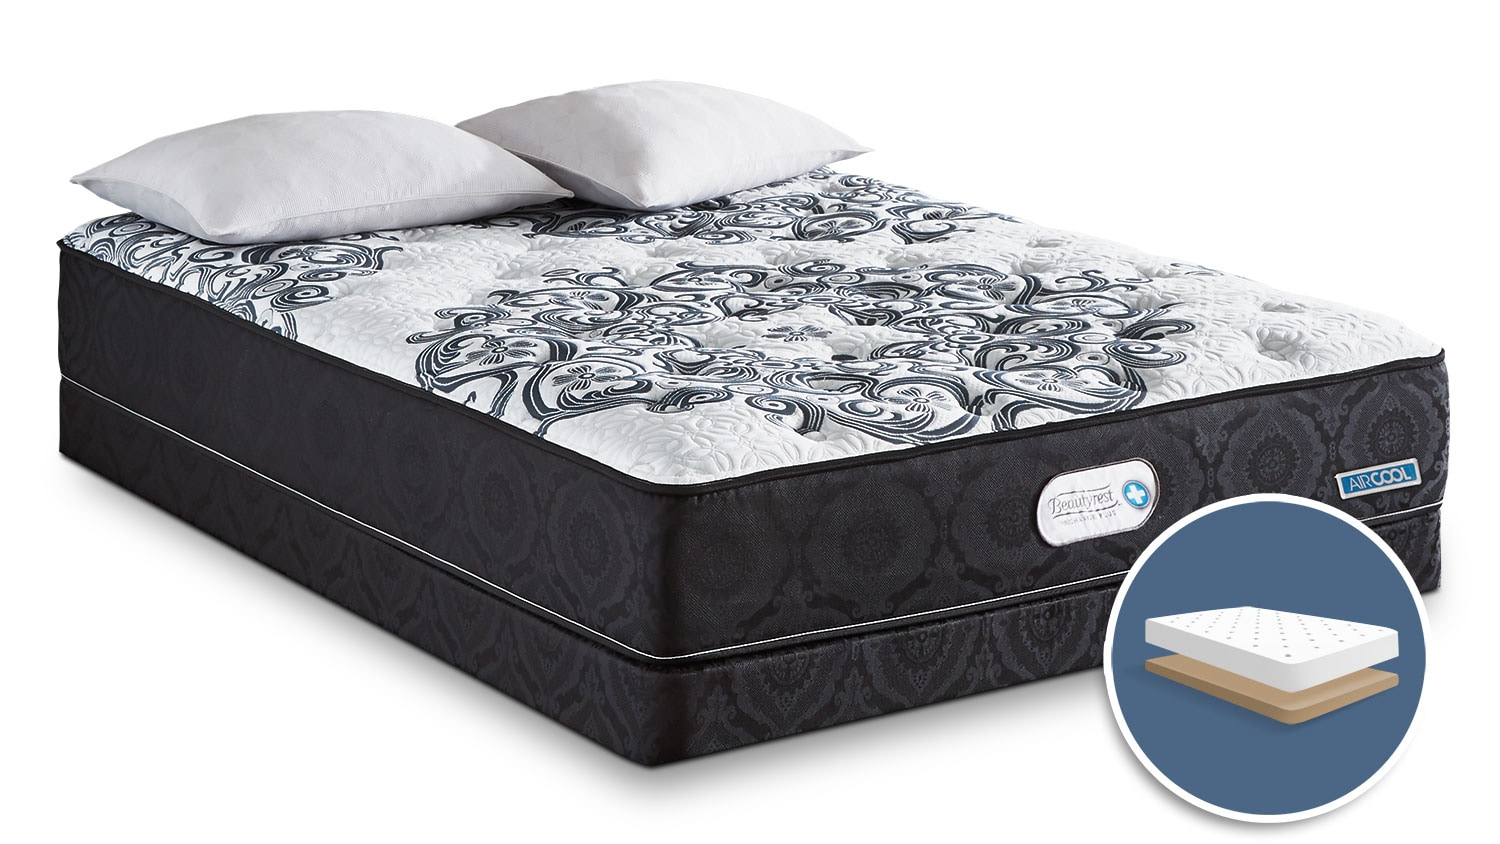 Mattresses and Bedding - Simmons Beautyrest® Recharge Plus Envy Tight-Top Firm Low-Profile Full Mattress Set